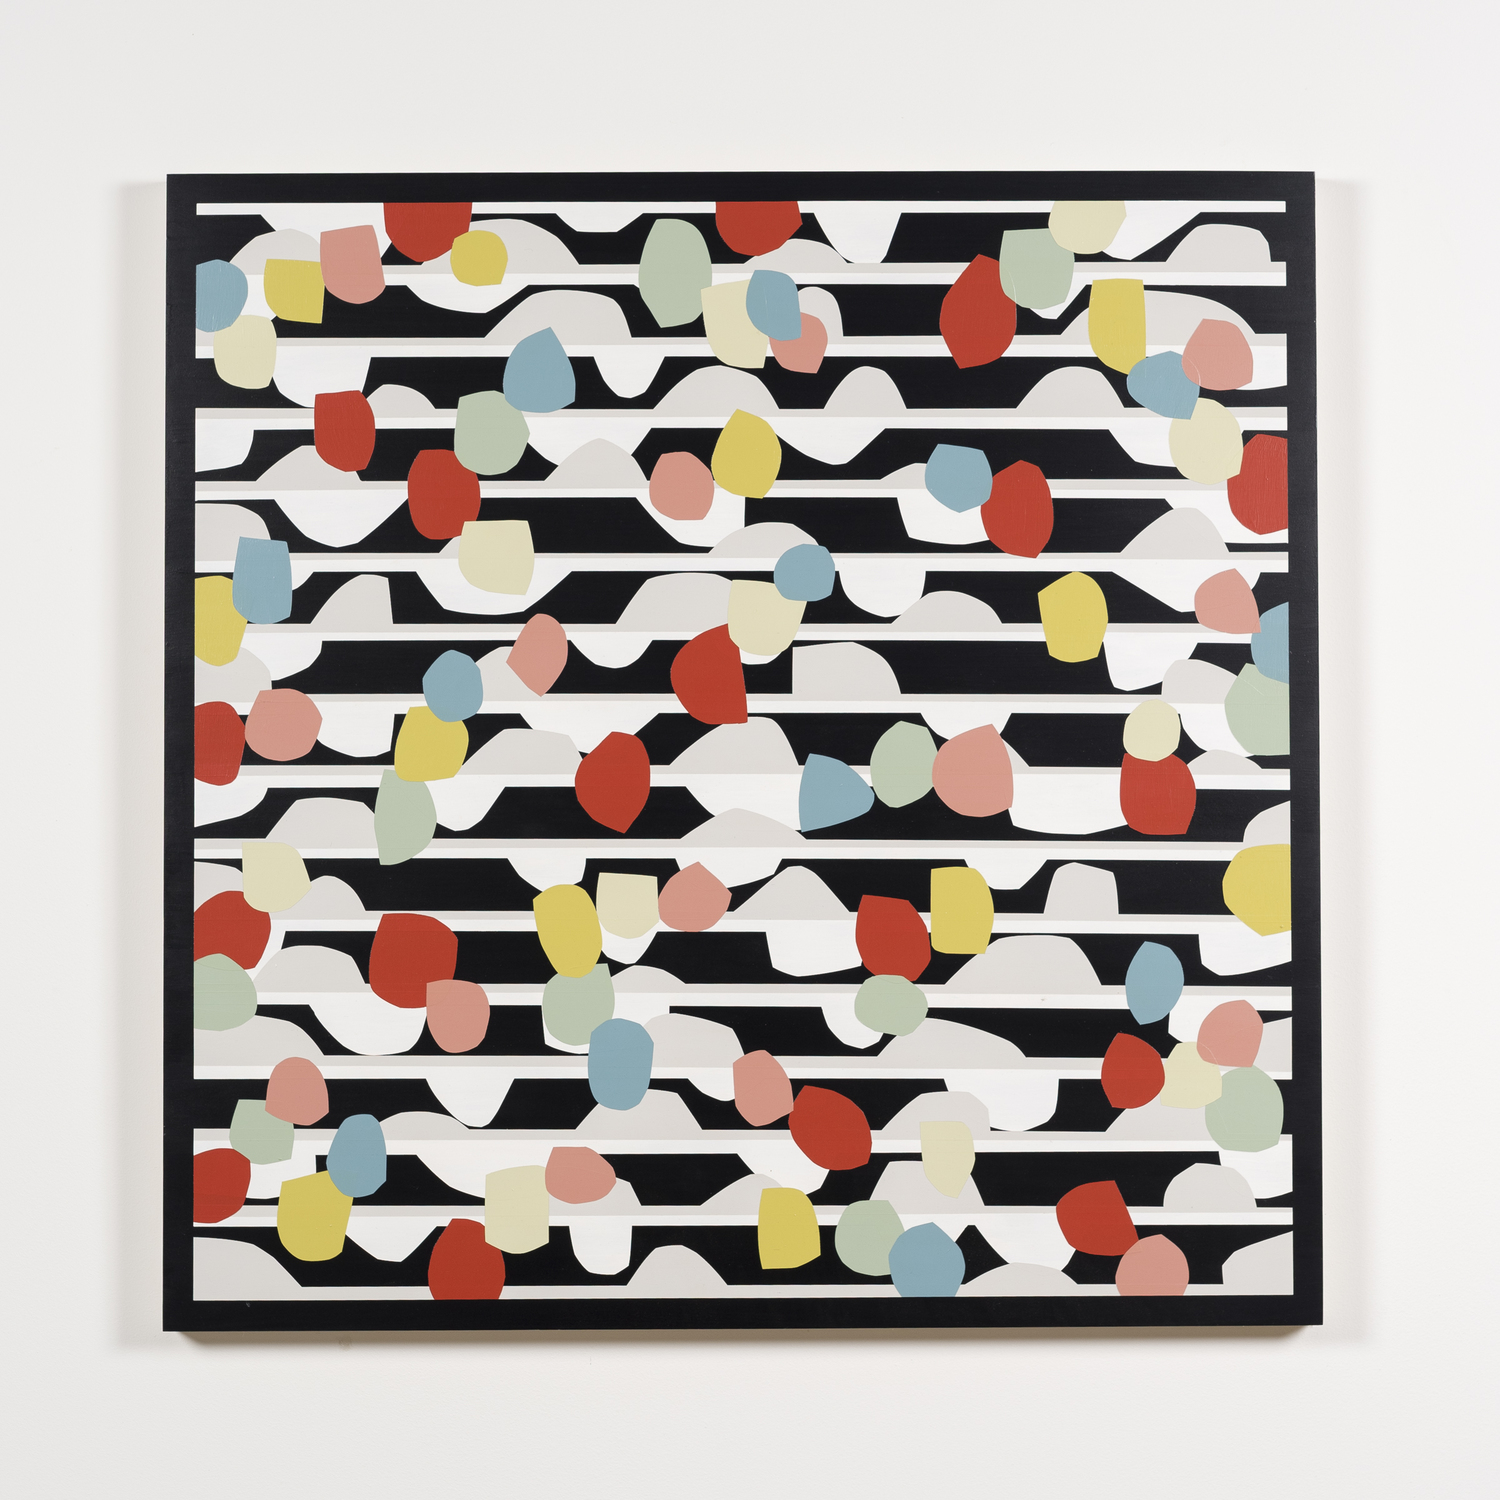 Nick Jaskey   Untitled 6  , 2015   House paint on wood panel  36 x 36 ""